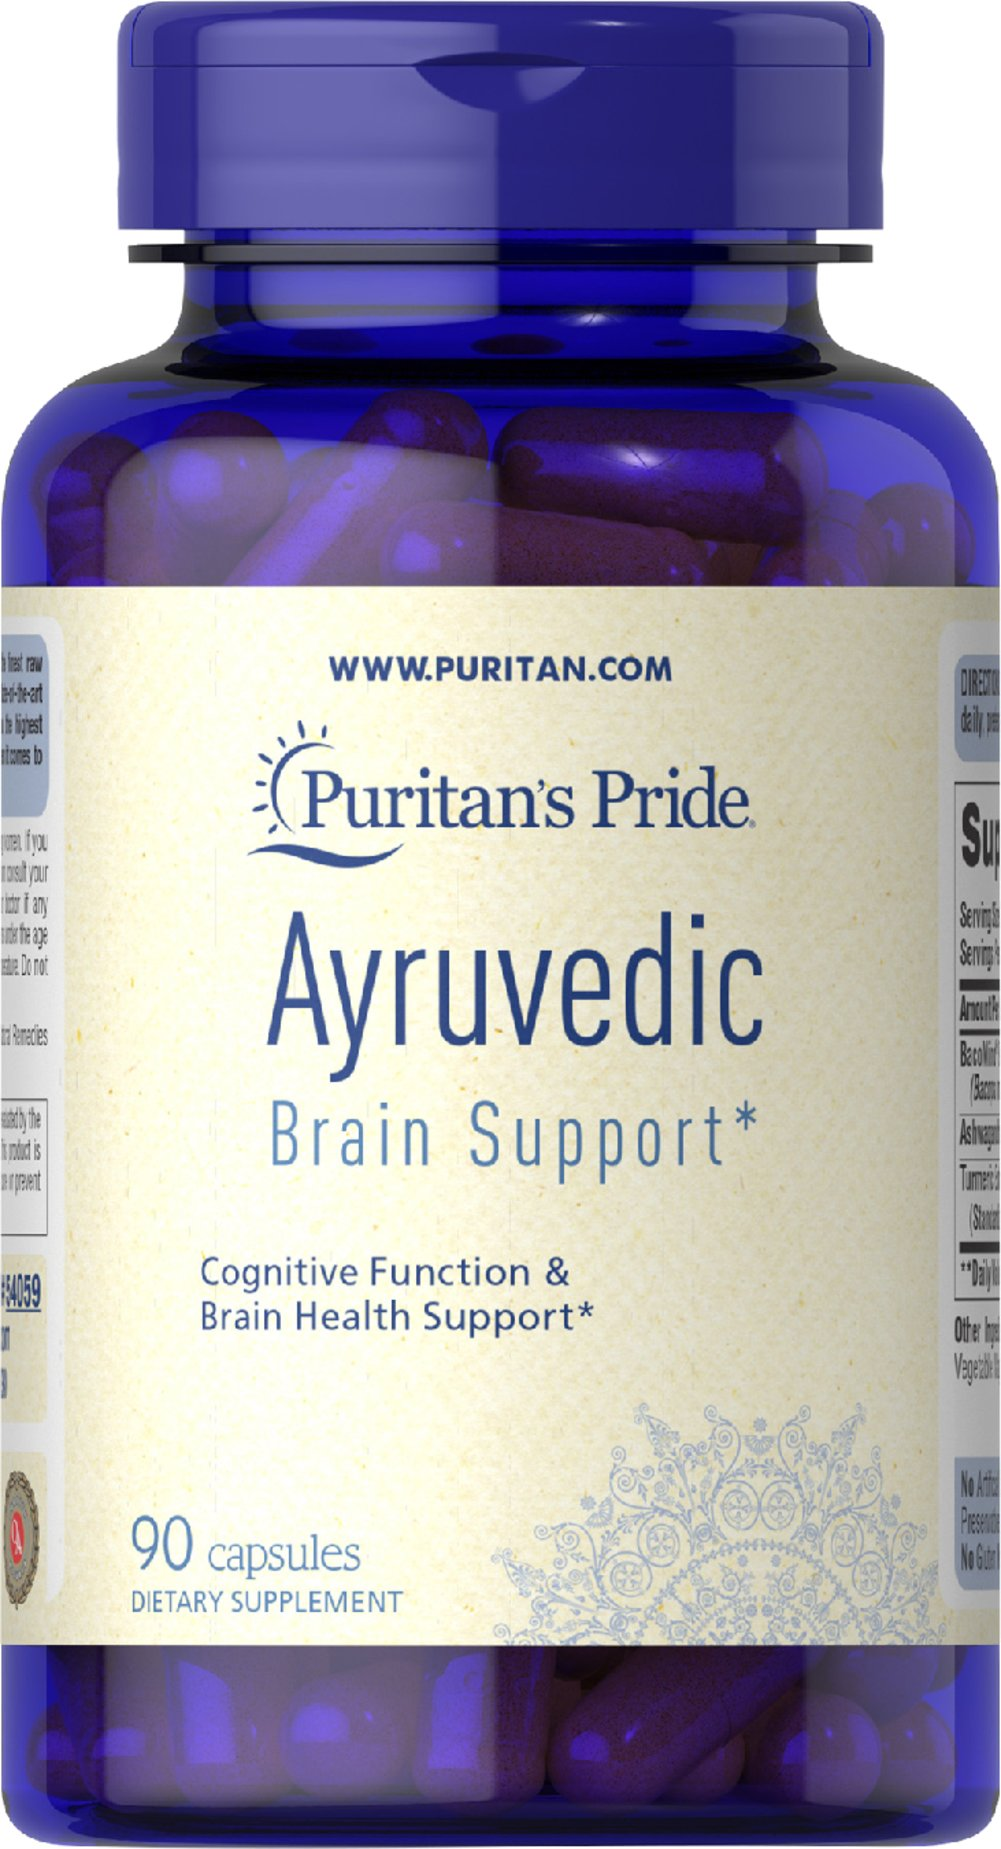 Ayurvedic Brain Health Support Bacopa, Ashwagandha, Turmeric Thumbnail Alternate Bottle View